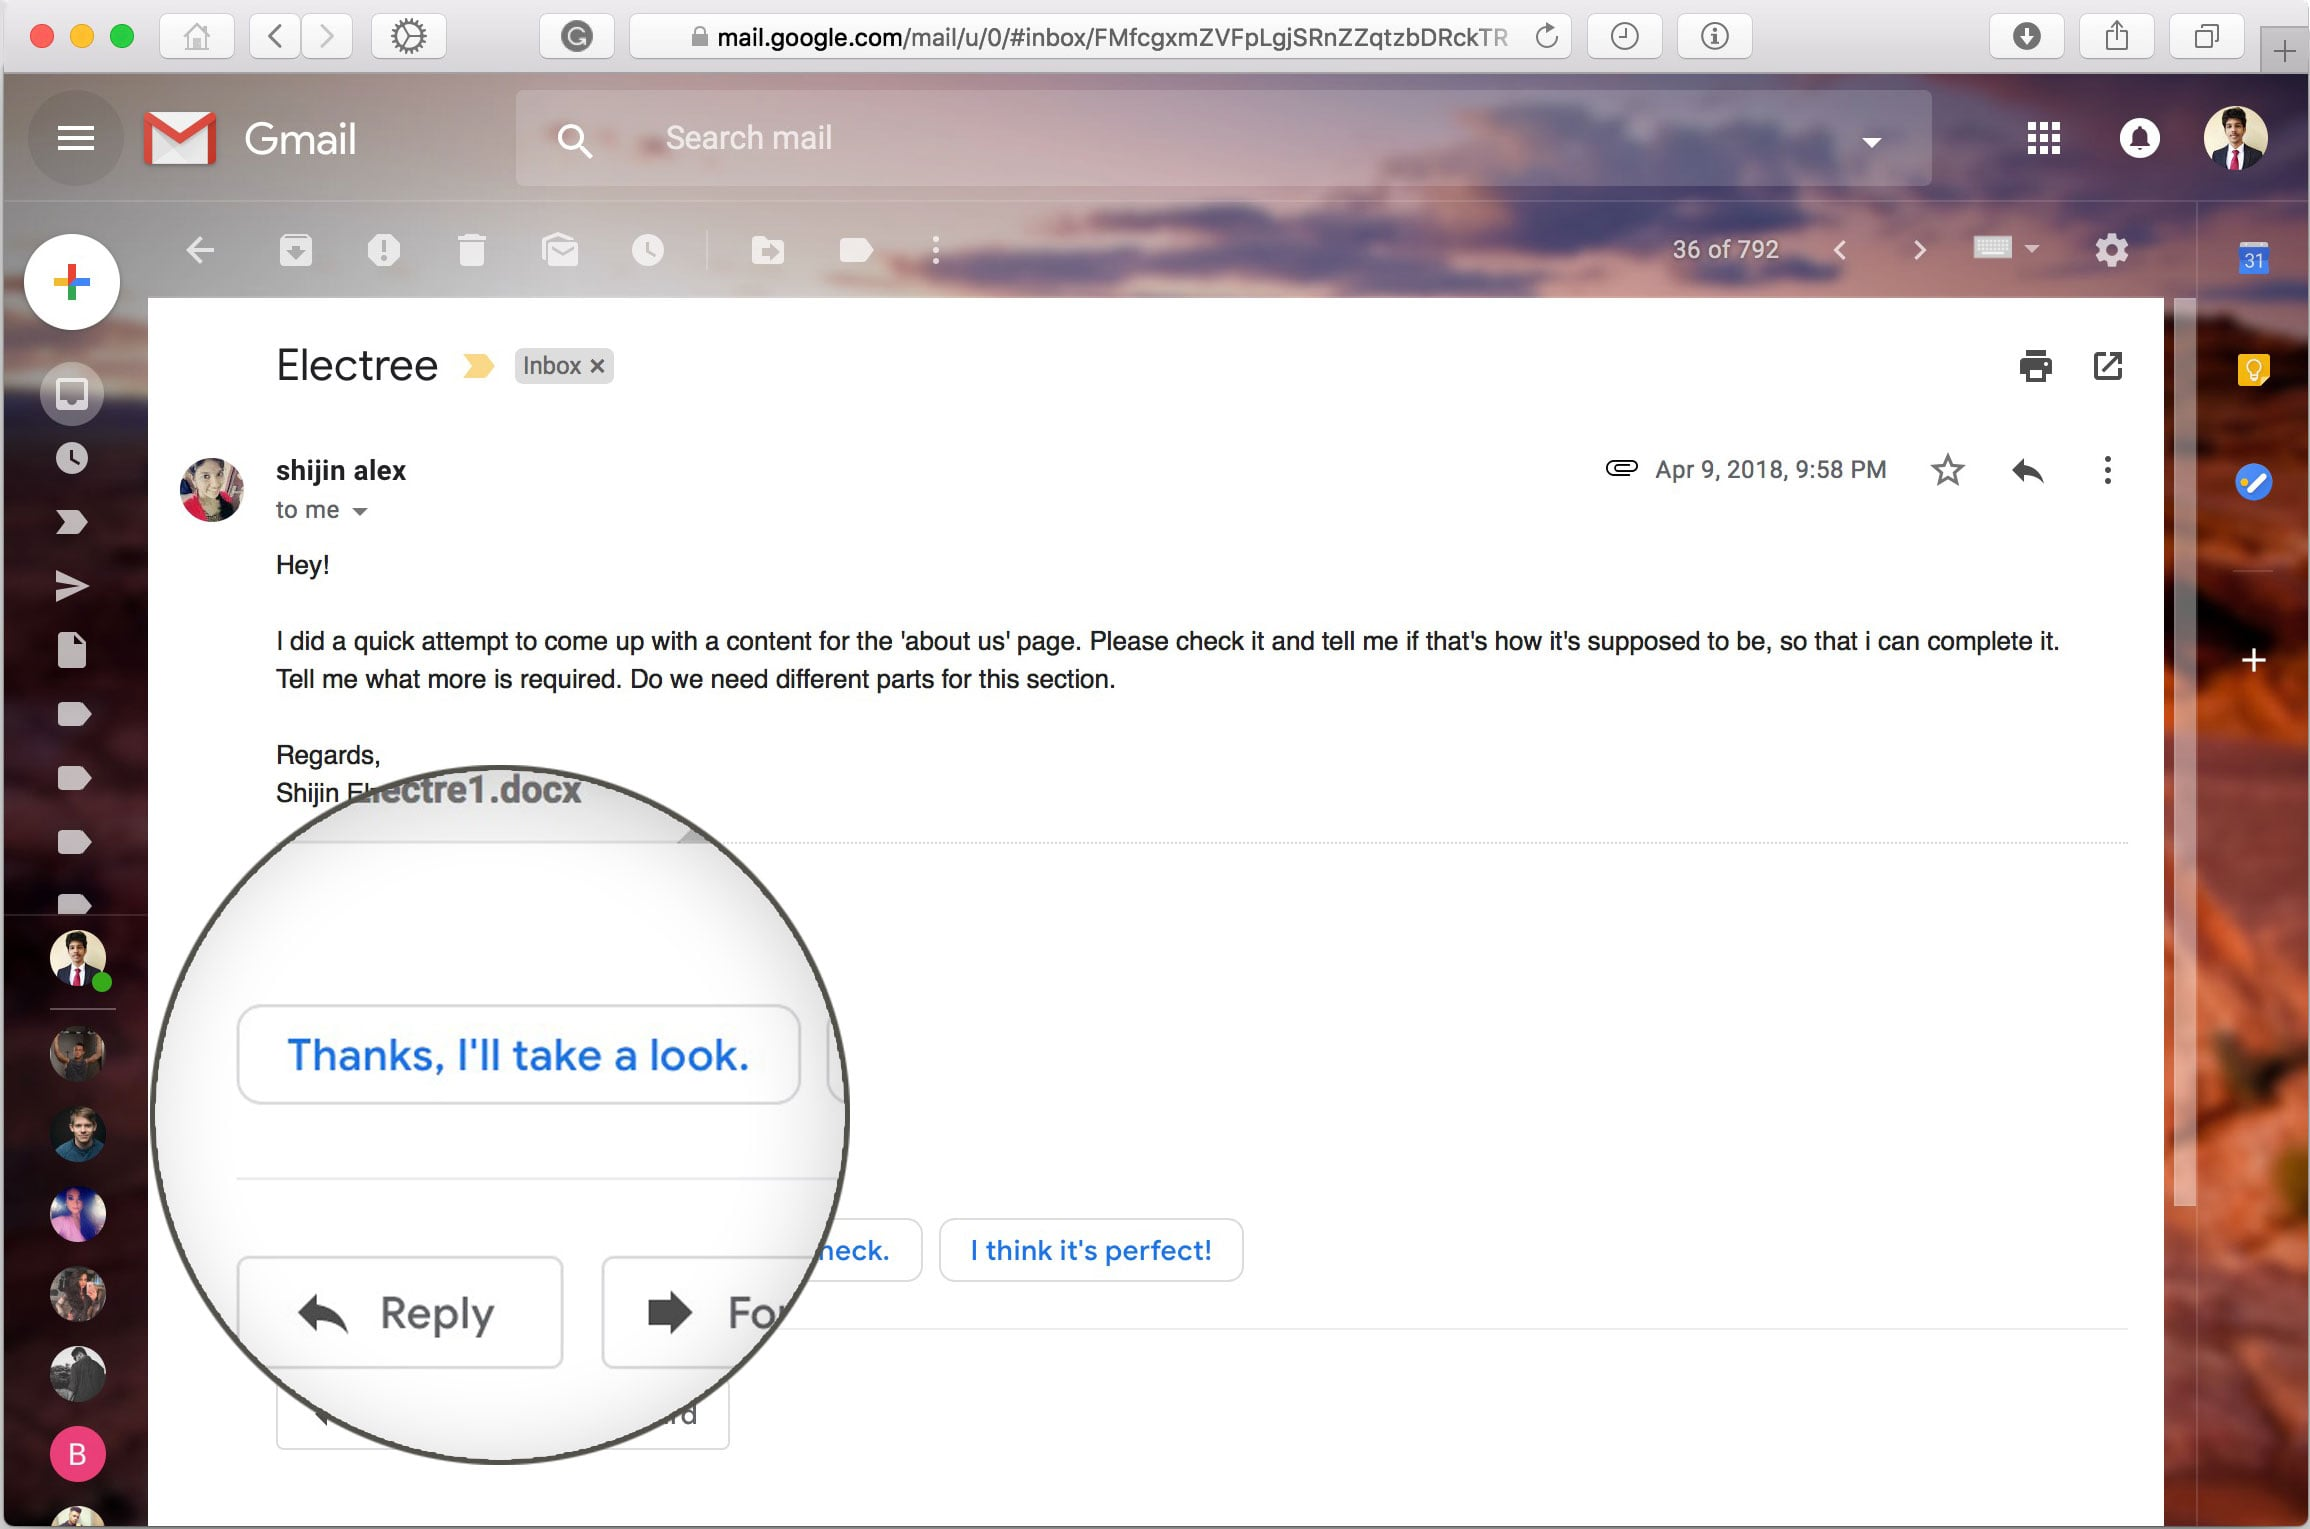 Smart reply is now available inside the gmail website